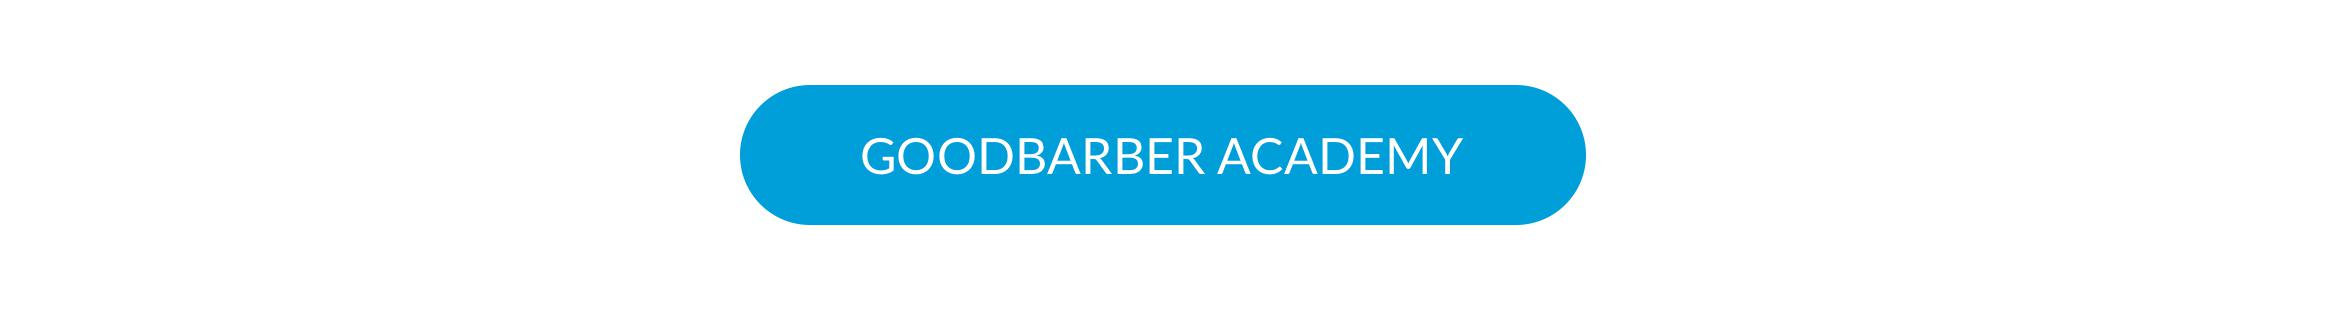 Welcome to GoodBarber Academy!